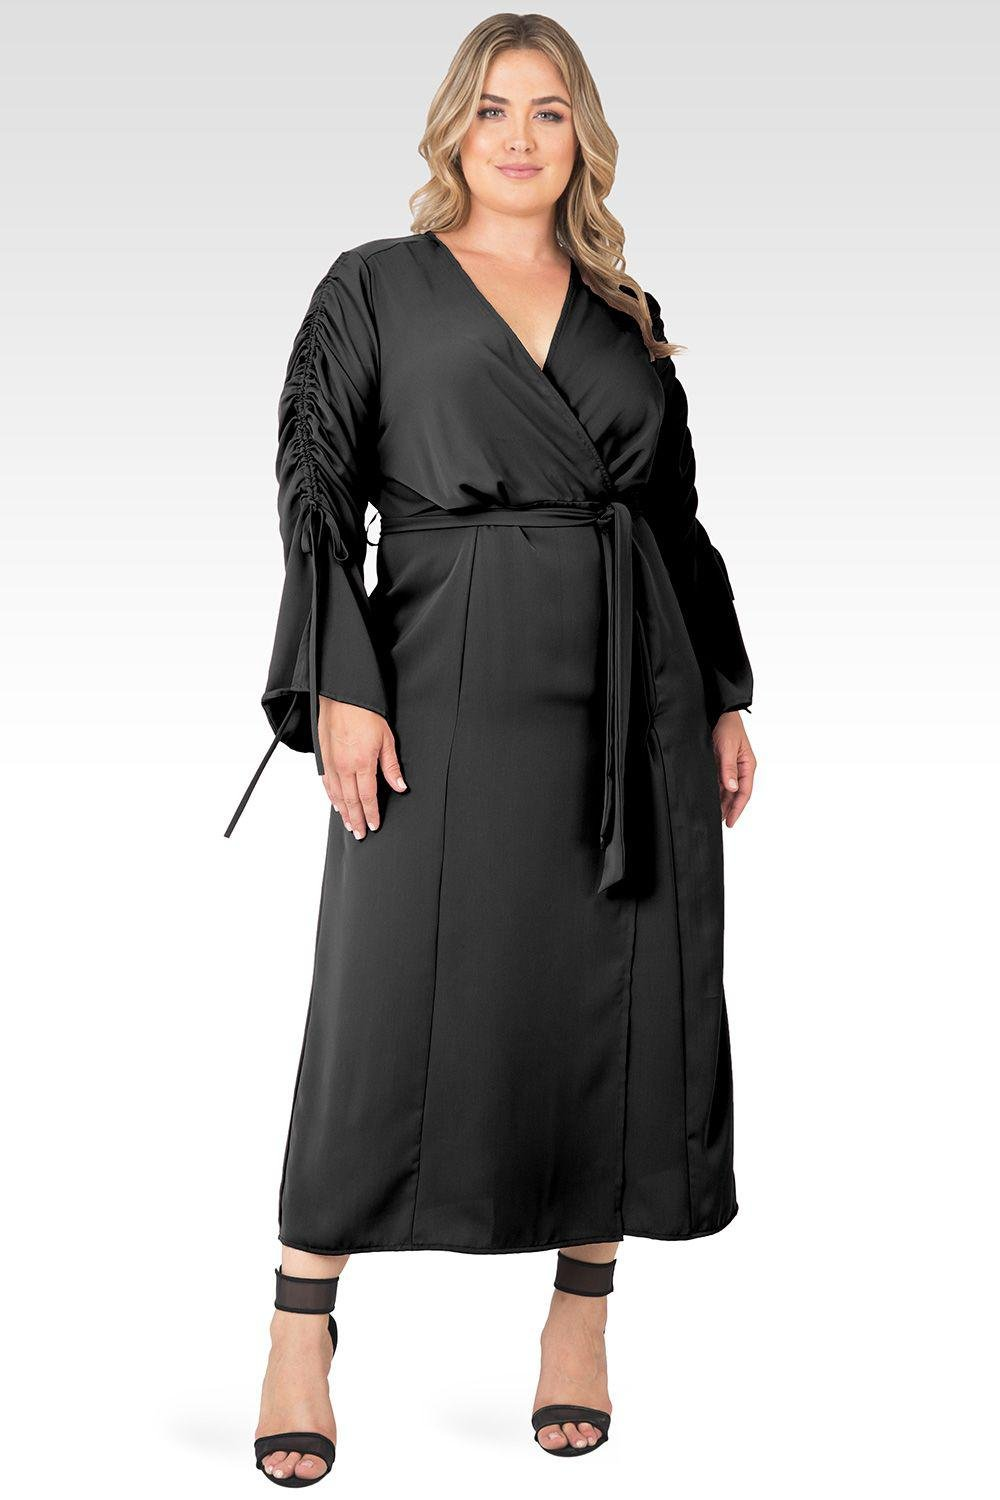 Plus Size Violeta Solid Black Ruched Sleeves Wrap Maxi Dress